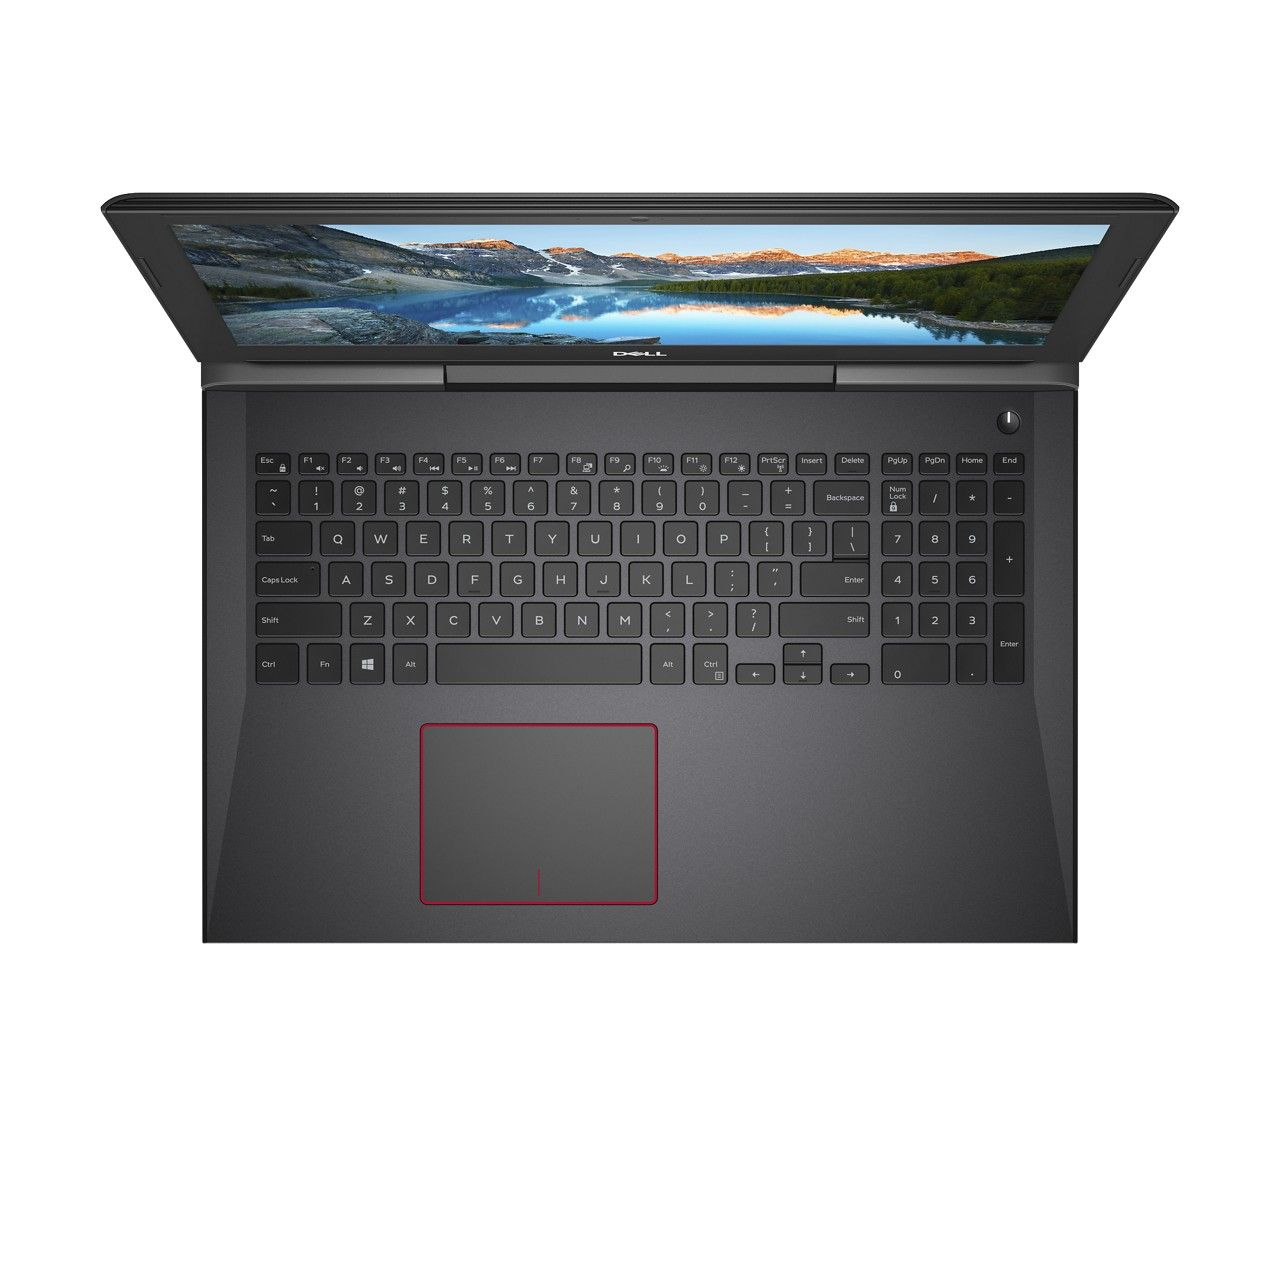 Dell G5 Gaming Laptop 15 6 Full Hd Intel Core I7 8750h Nvidia Geforce Gtx 1050 Ti 4gb 1tb Hdd 128gb Ssd Storage 8gb Ram Dell Inspiron Ssd Gaming Laptops